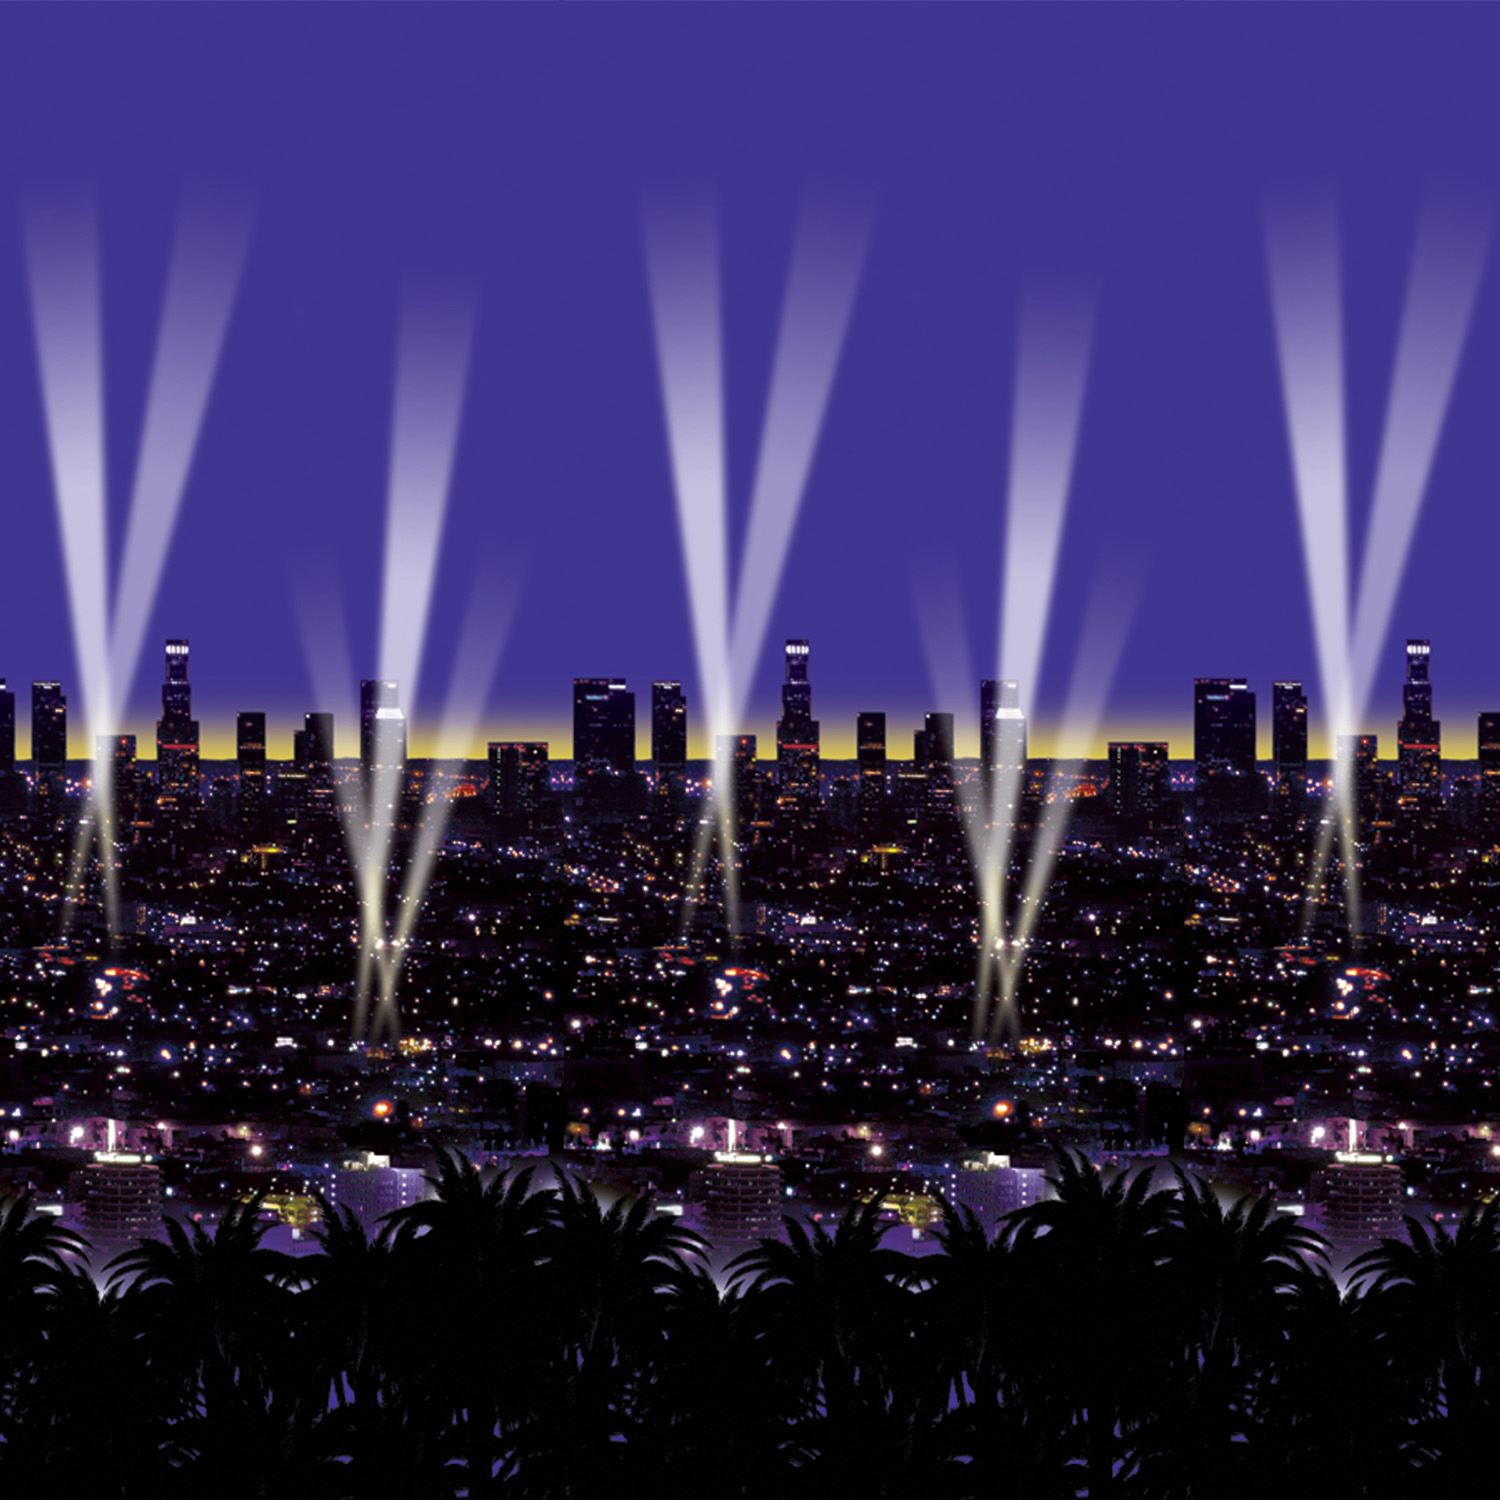 Skyline Backdrop (Pack of 6) backdrop, photos, new years eve, hollywood, city, skyline, inexpensive, wholesale, bulk